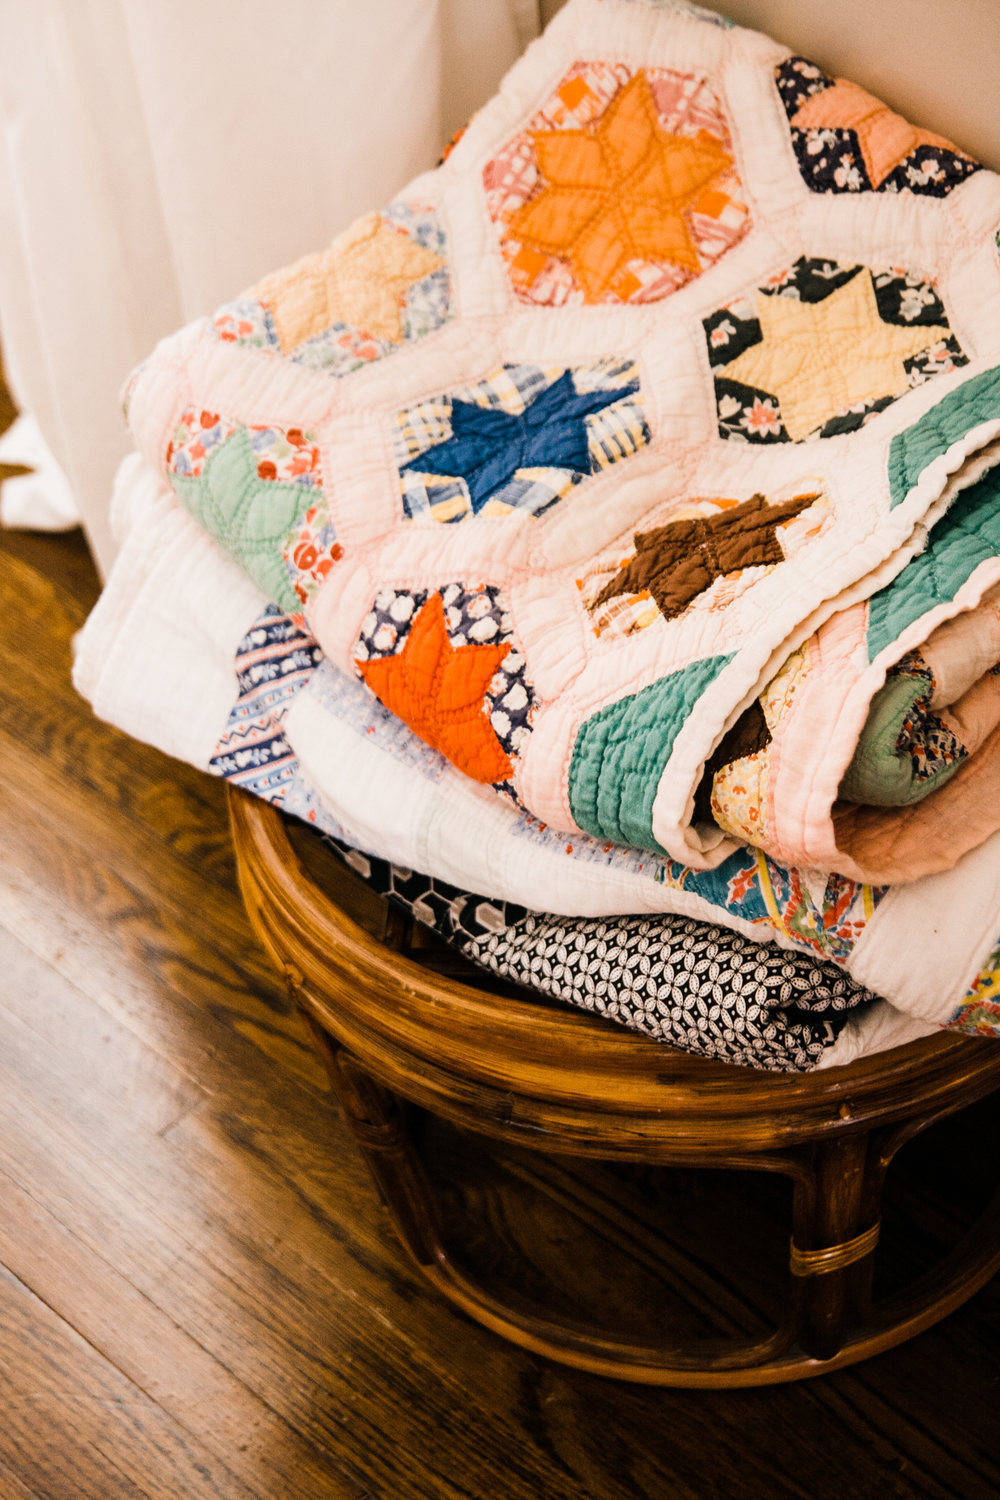 Rachel has a colorful vintage quilt collection that Daly may have drooled all over.